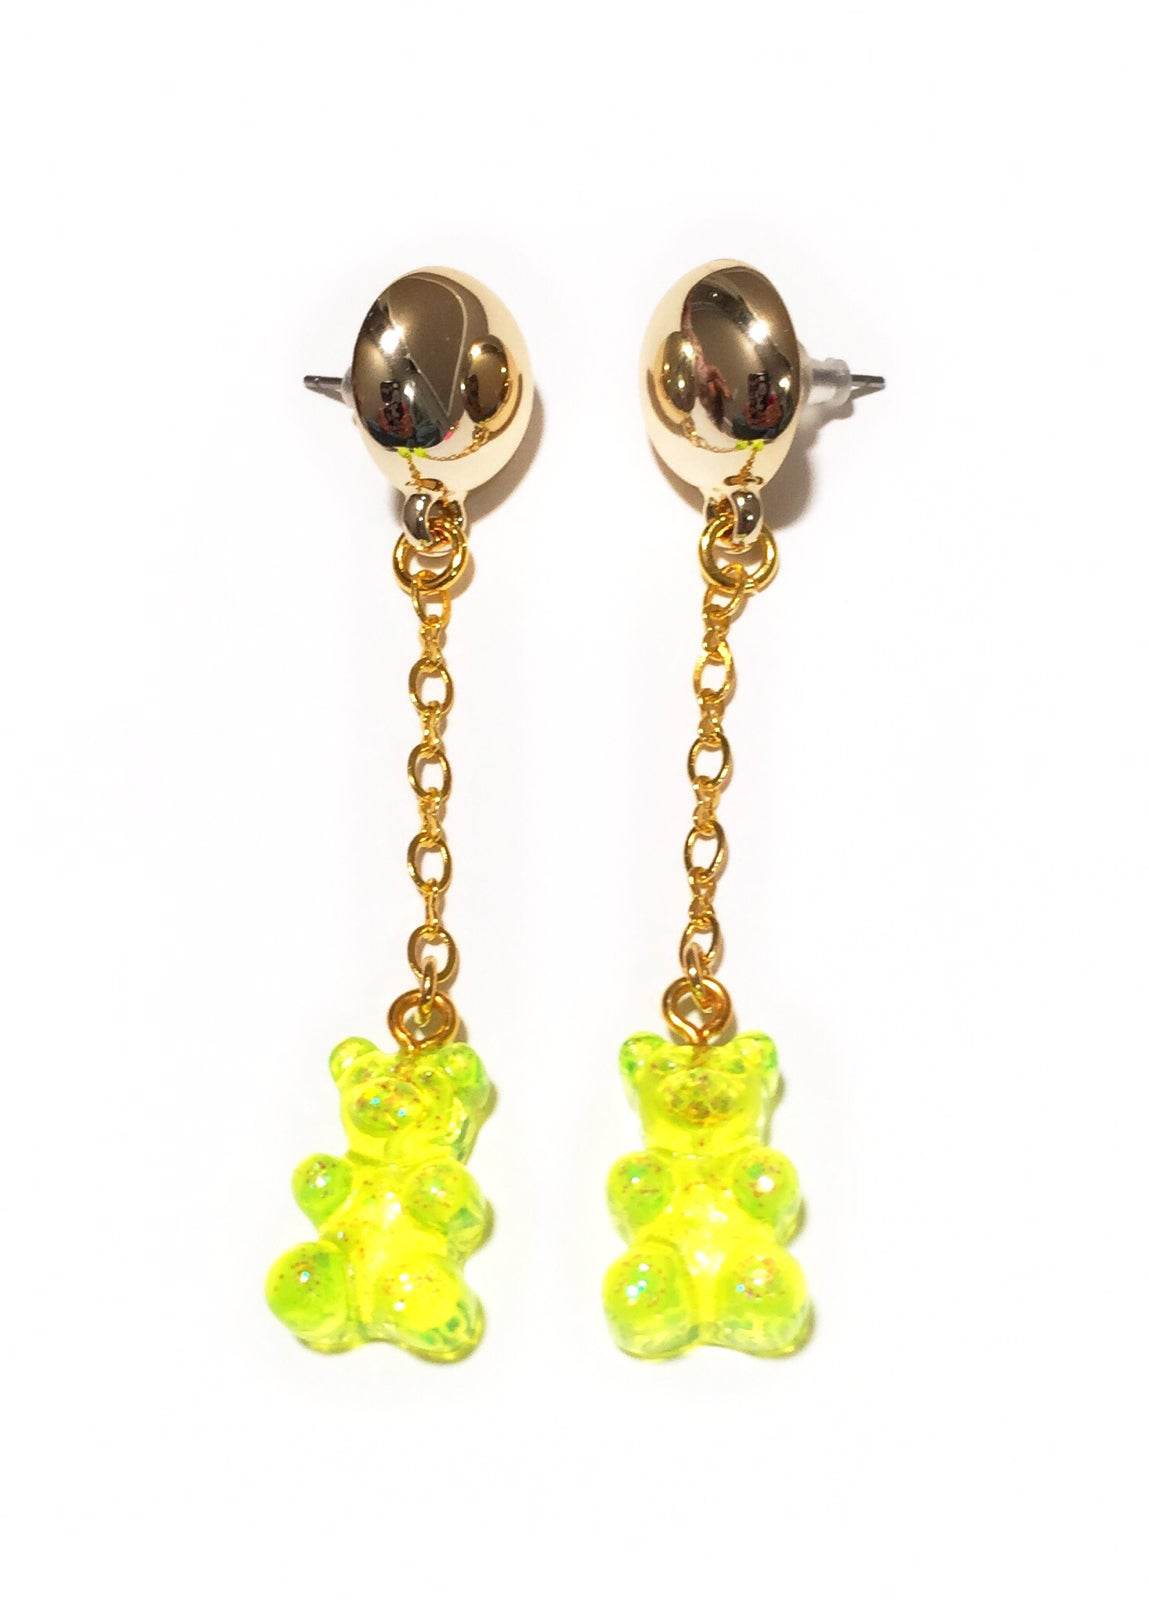 Image of Lemon Gummy Bear Earrings